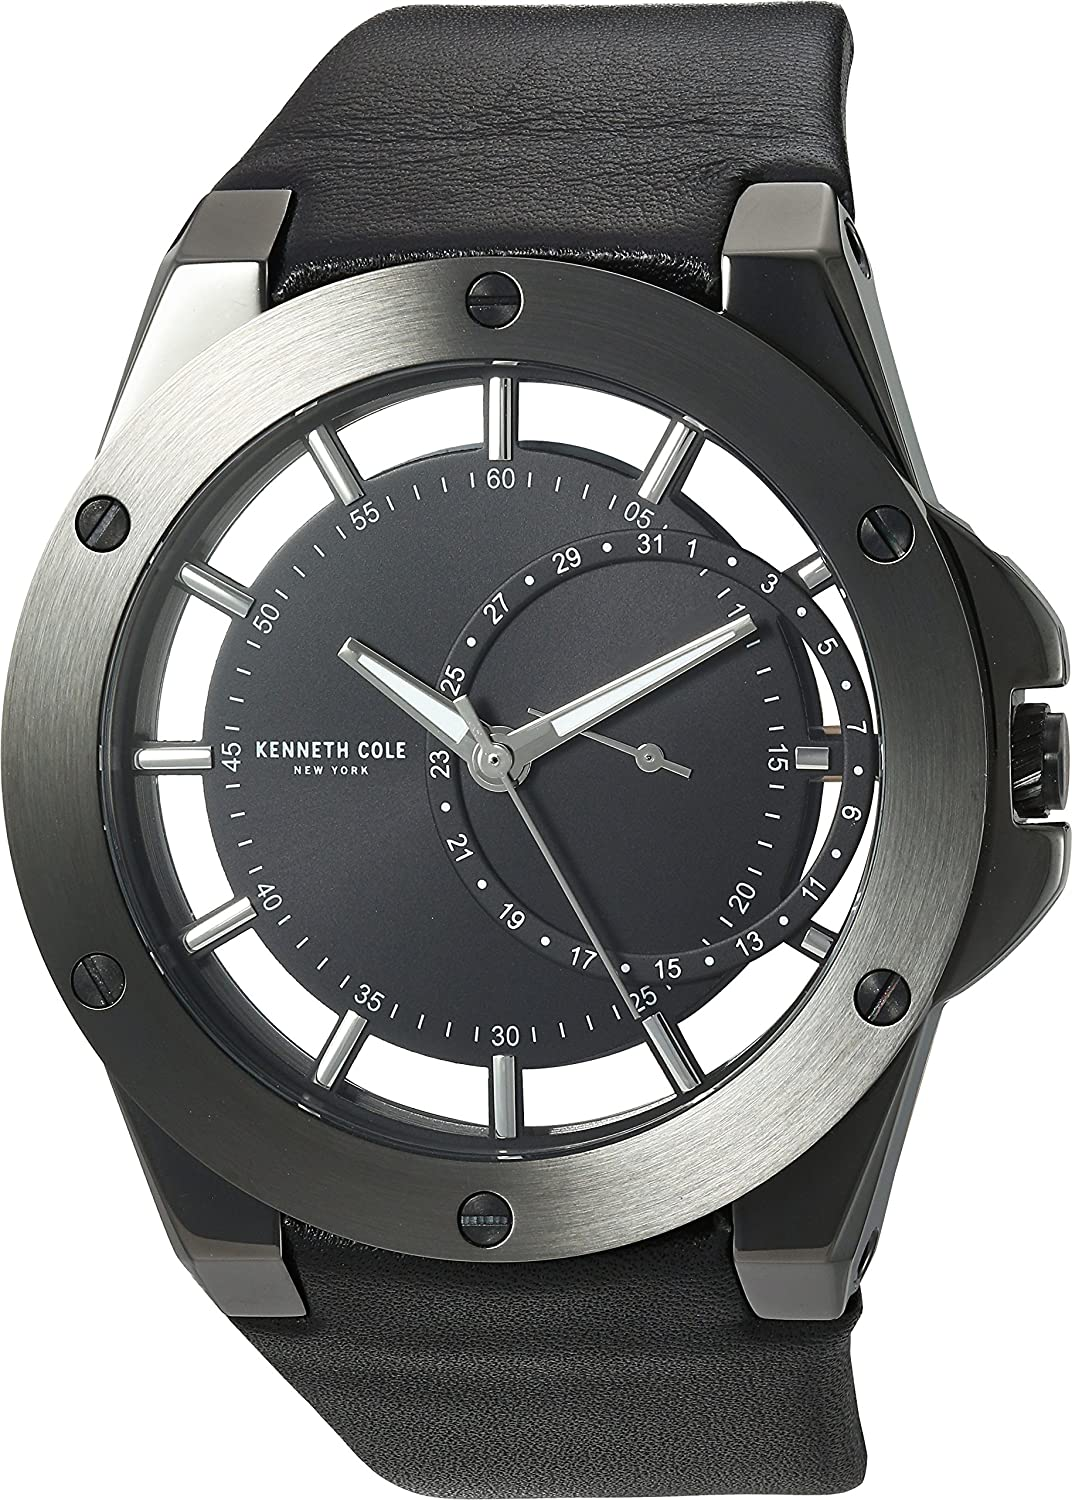 Kenneth Cole New York Men s Transparency Stainless Steel Japanese-Quartz Watch with Leather Calfskin Strap, Black, 29 Model 10030785